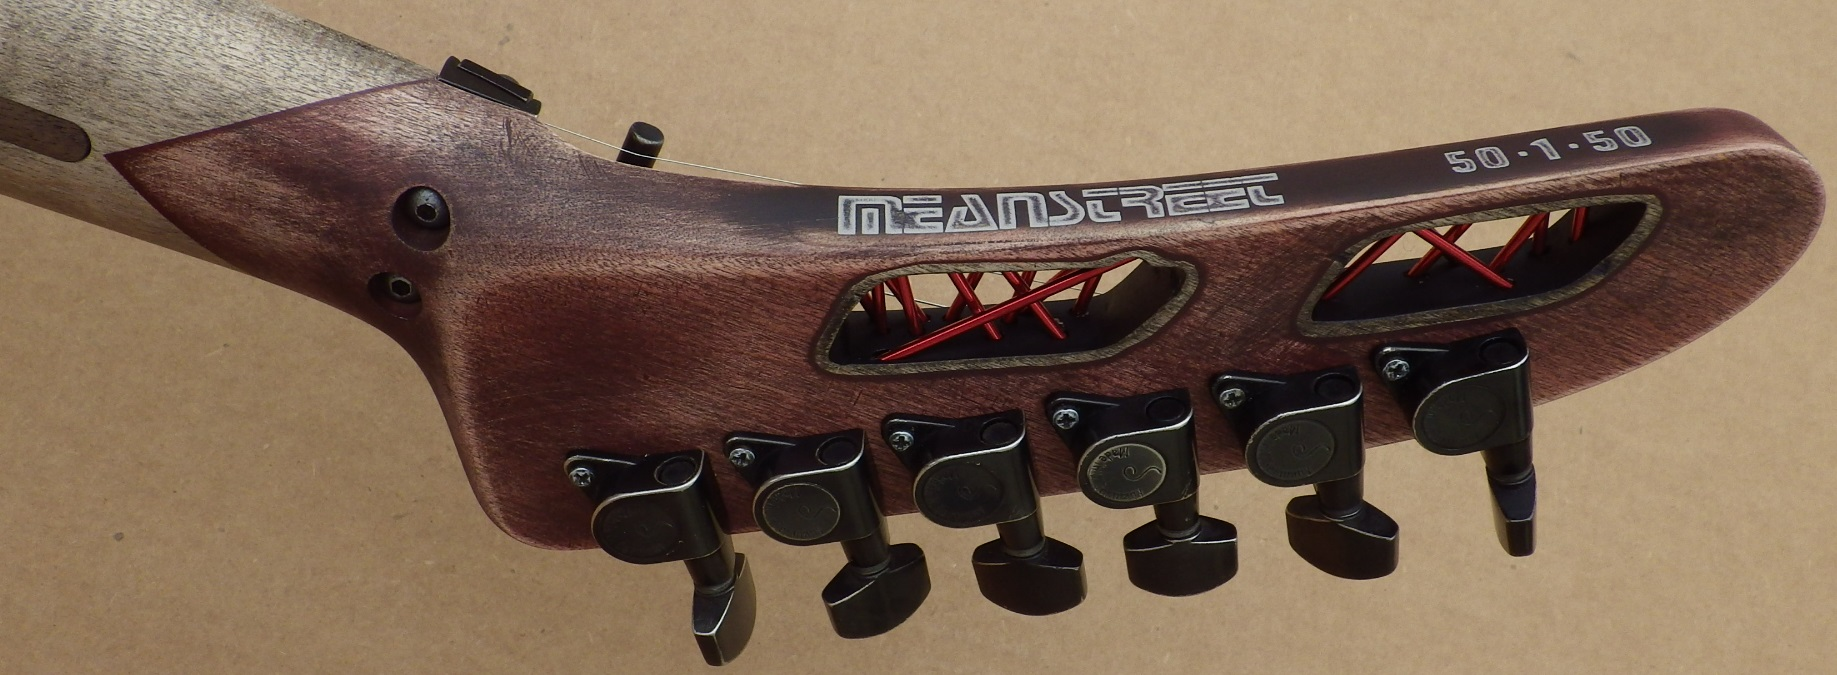 Mean Street Guitars Industrial 50 1 50 Pipeline 01 maroon pic 7.jpg